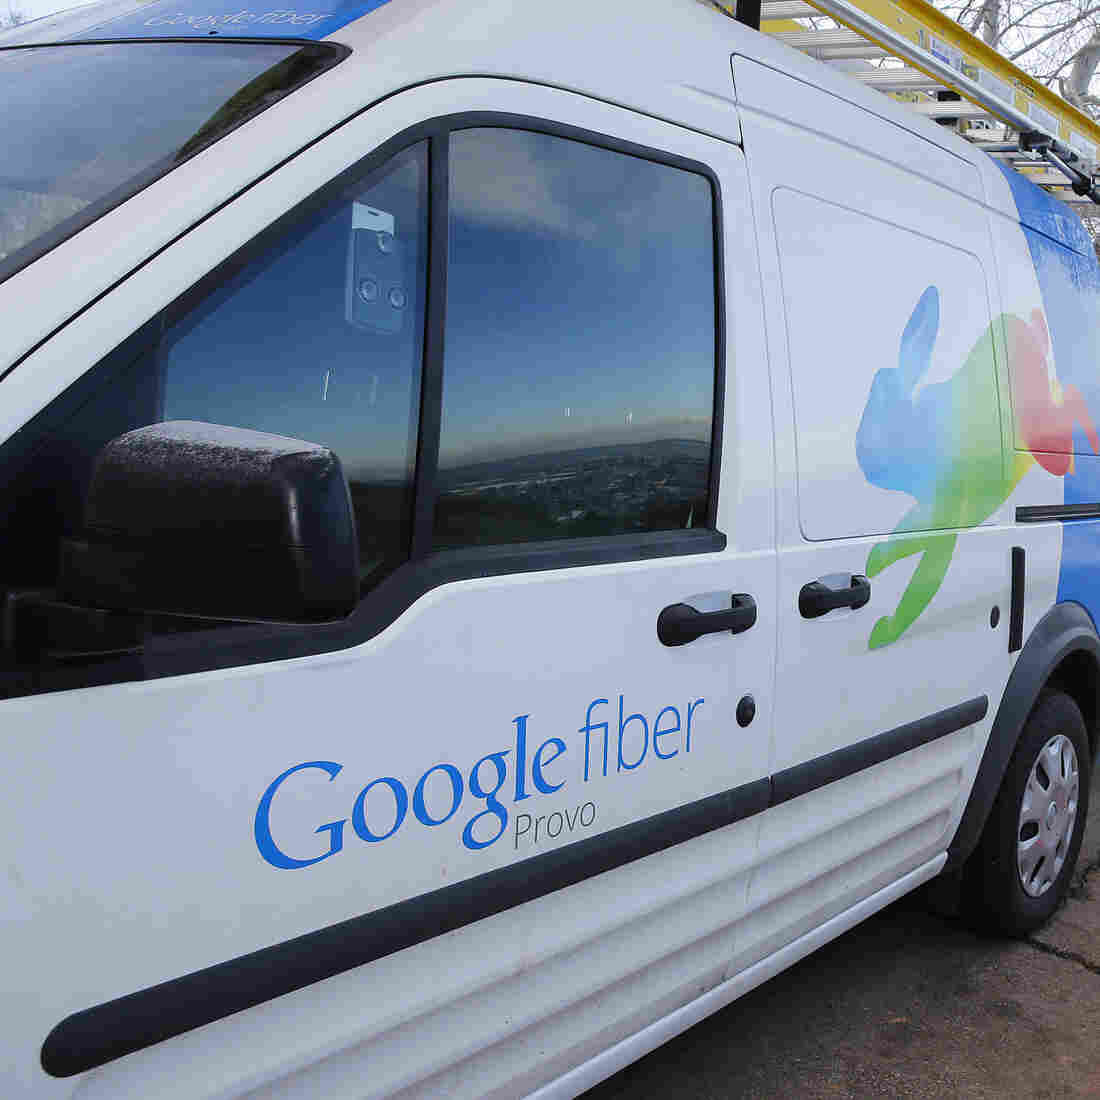 Provo, Utah, is one of three cities in which Google is rolling out its Google Fiber gigabit Internet and television service.